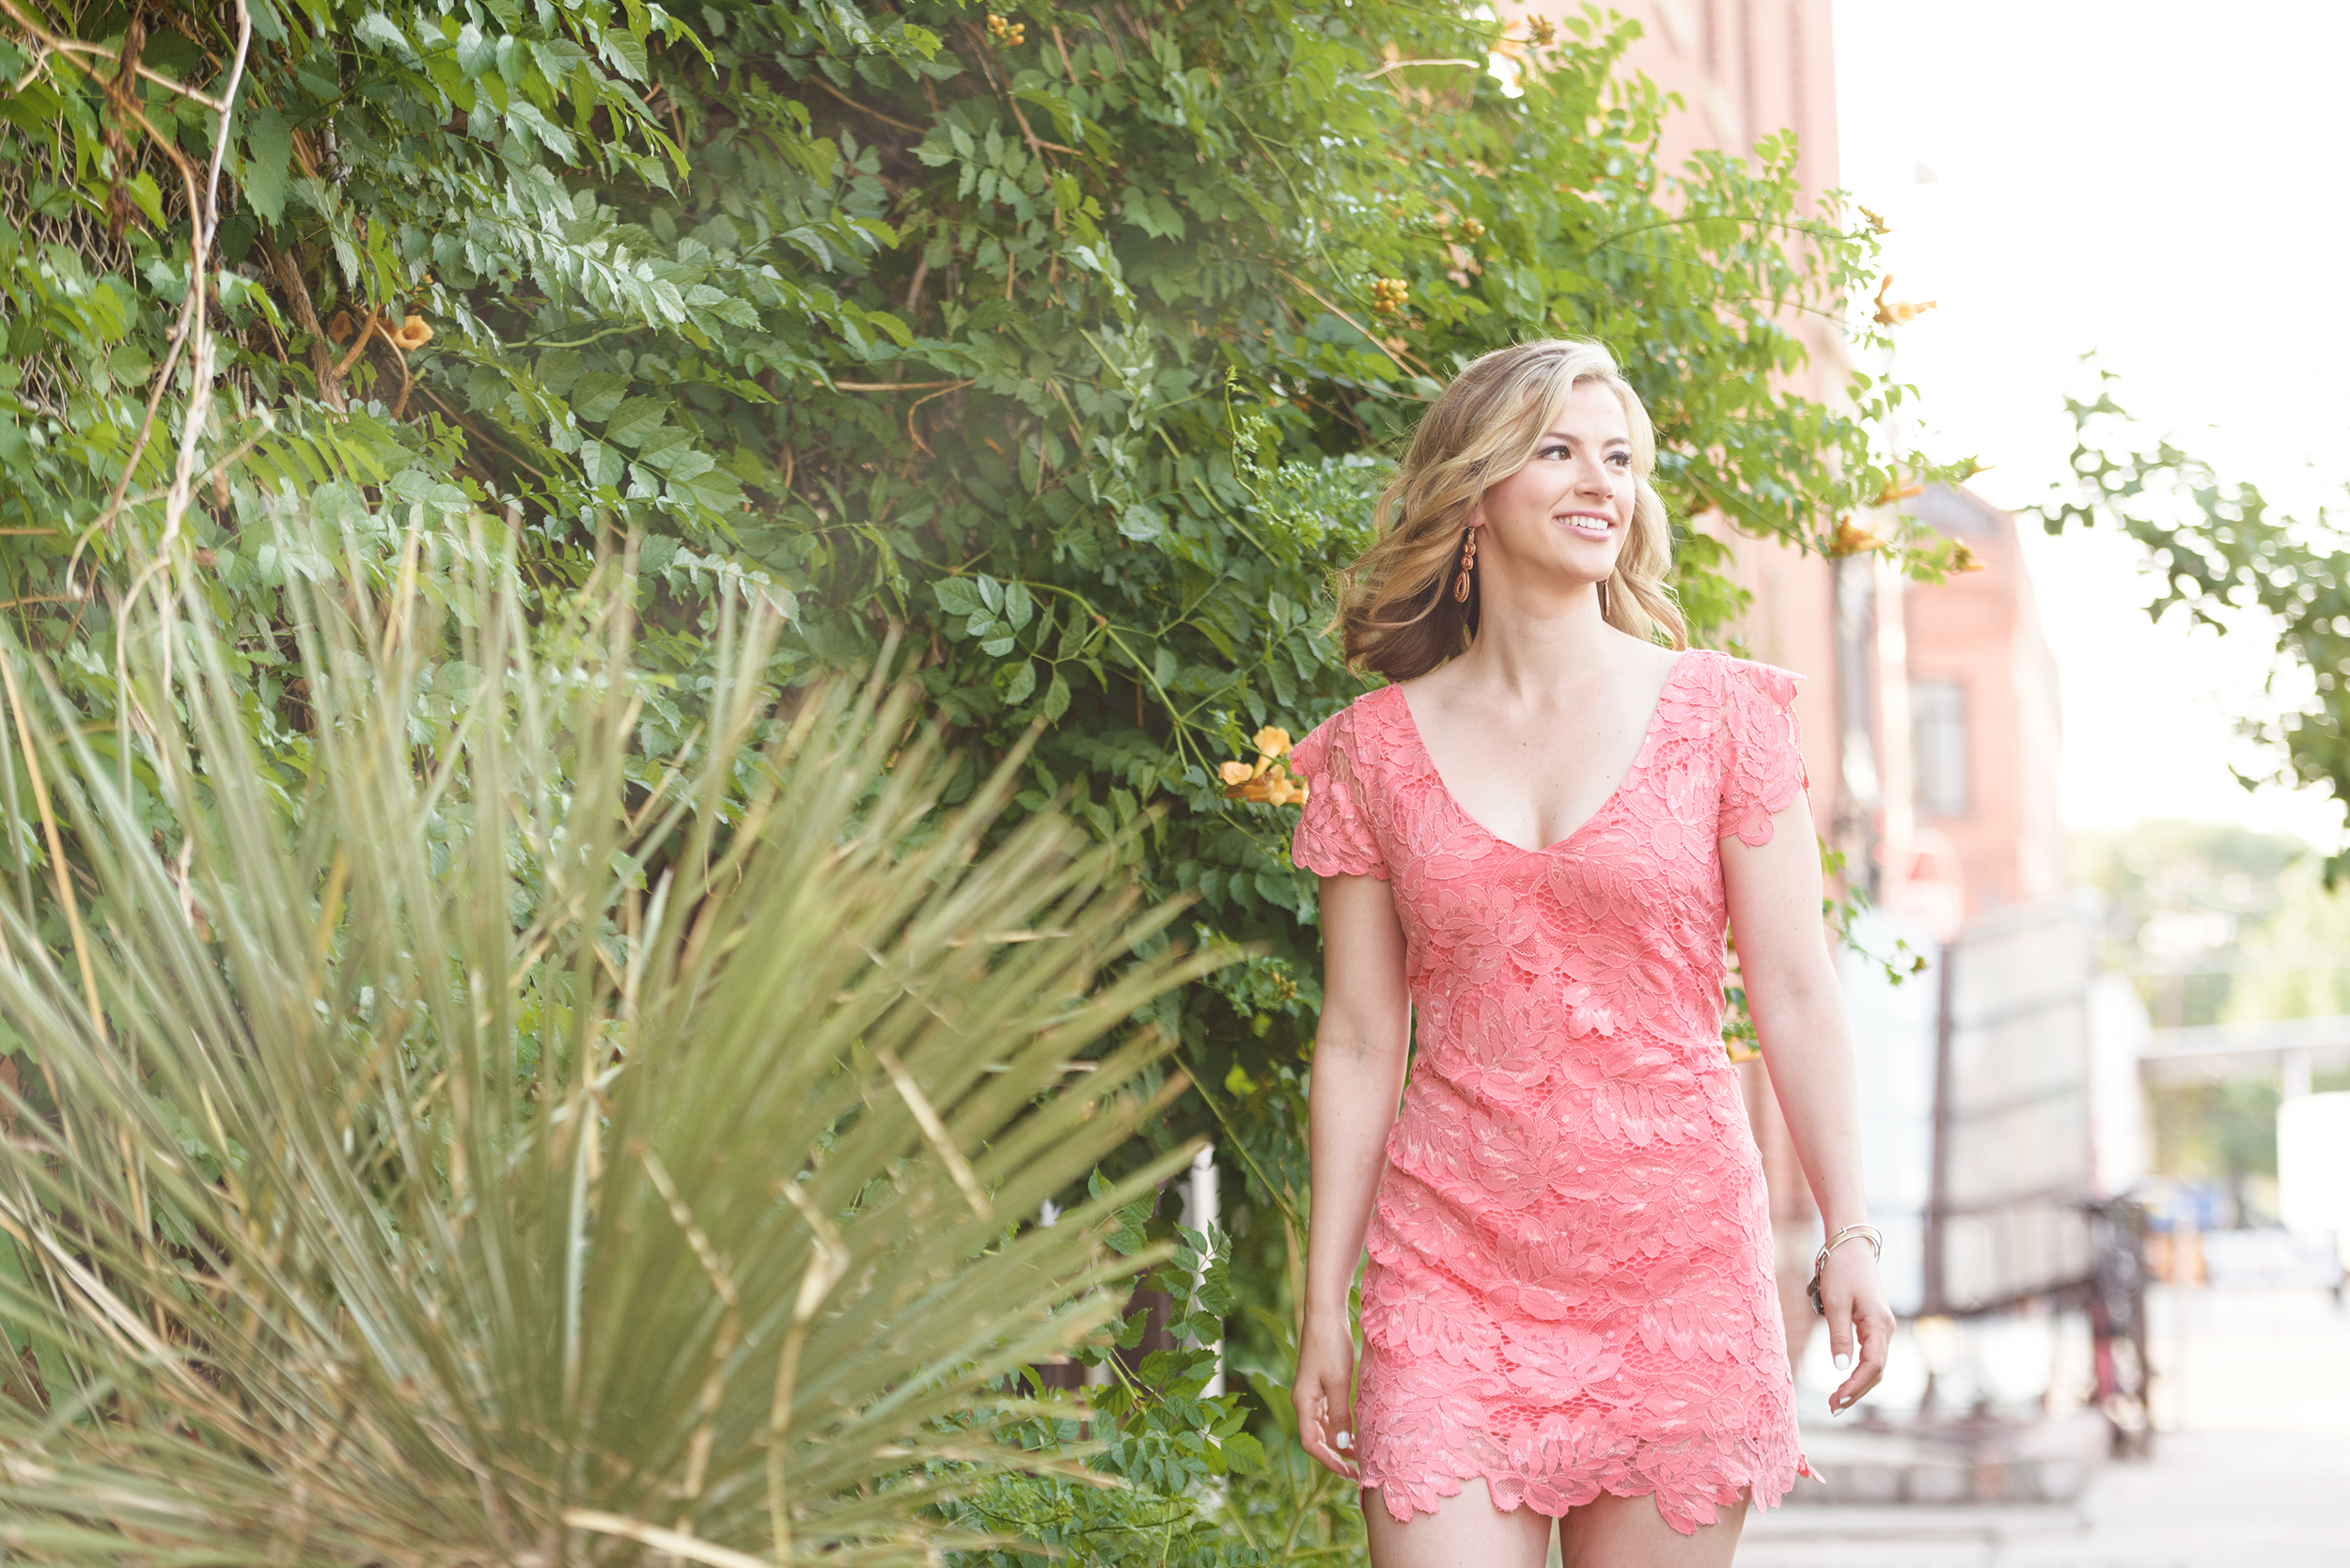 Womens Fashion Lifestyle image in Denver, CO